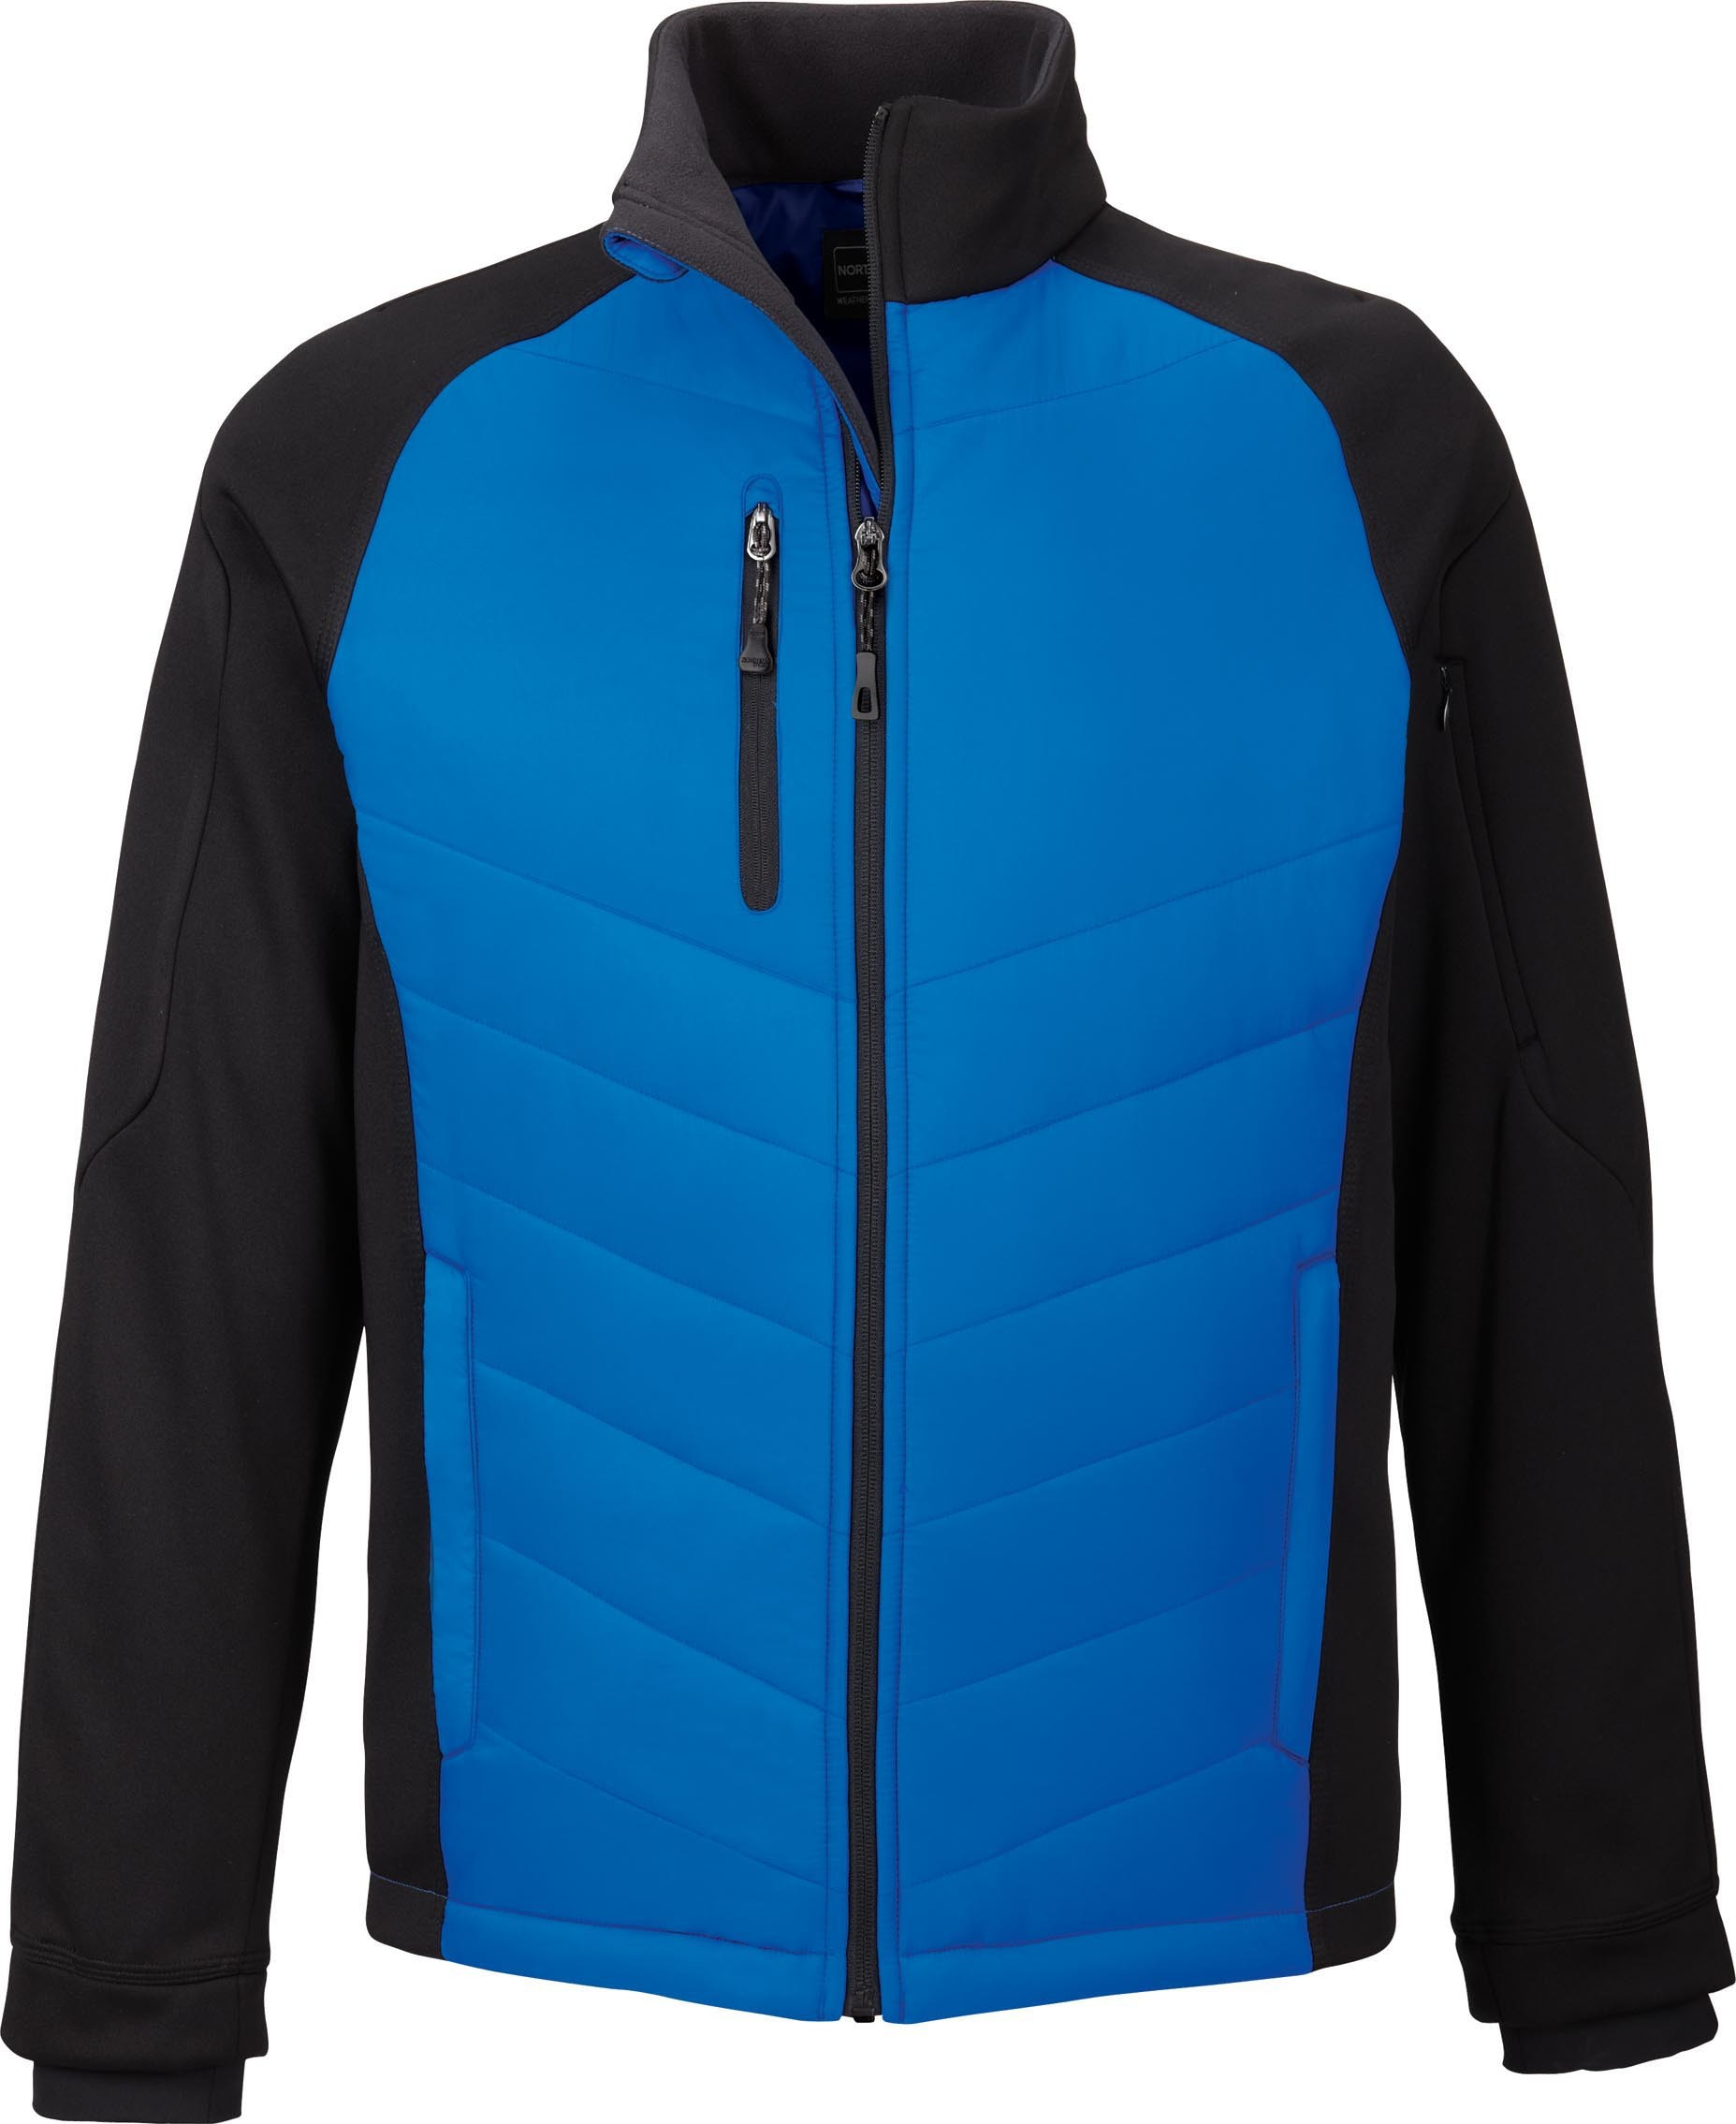 Ash City UTK 1 Warm.Logik 88662 - Epic Men's Insulated ...